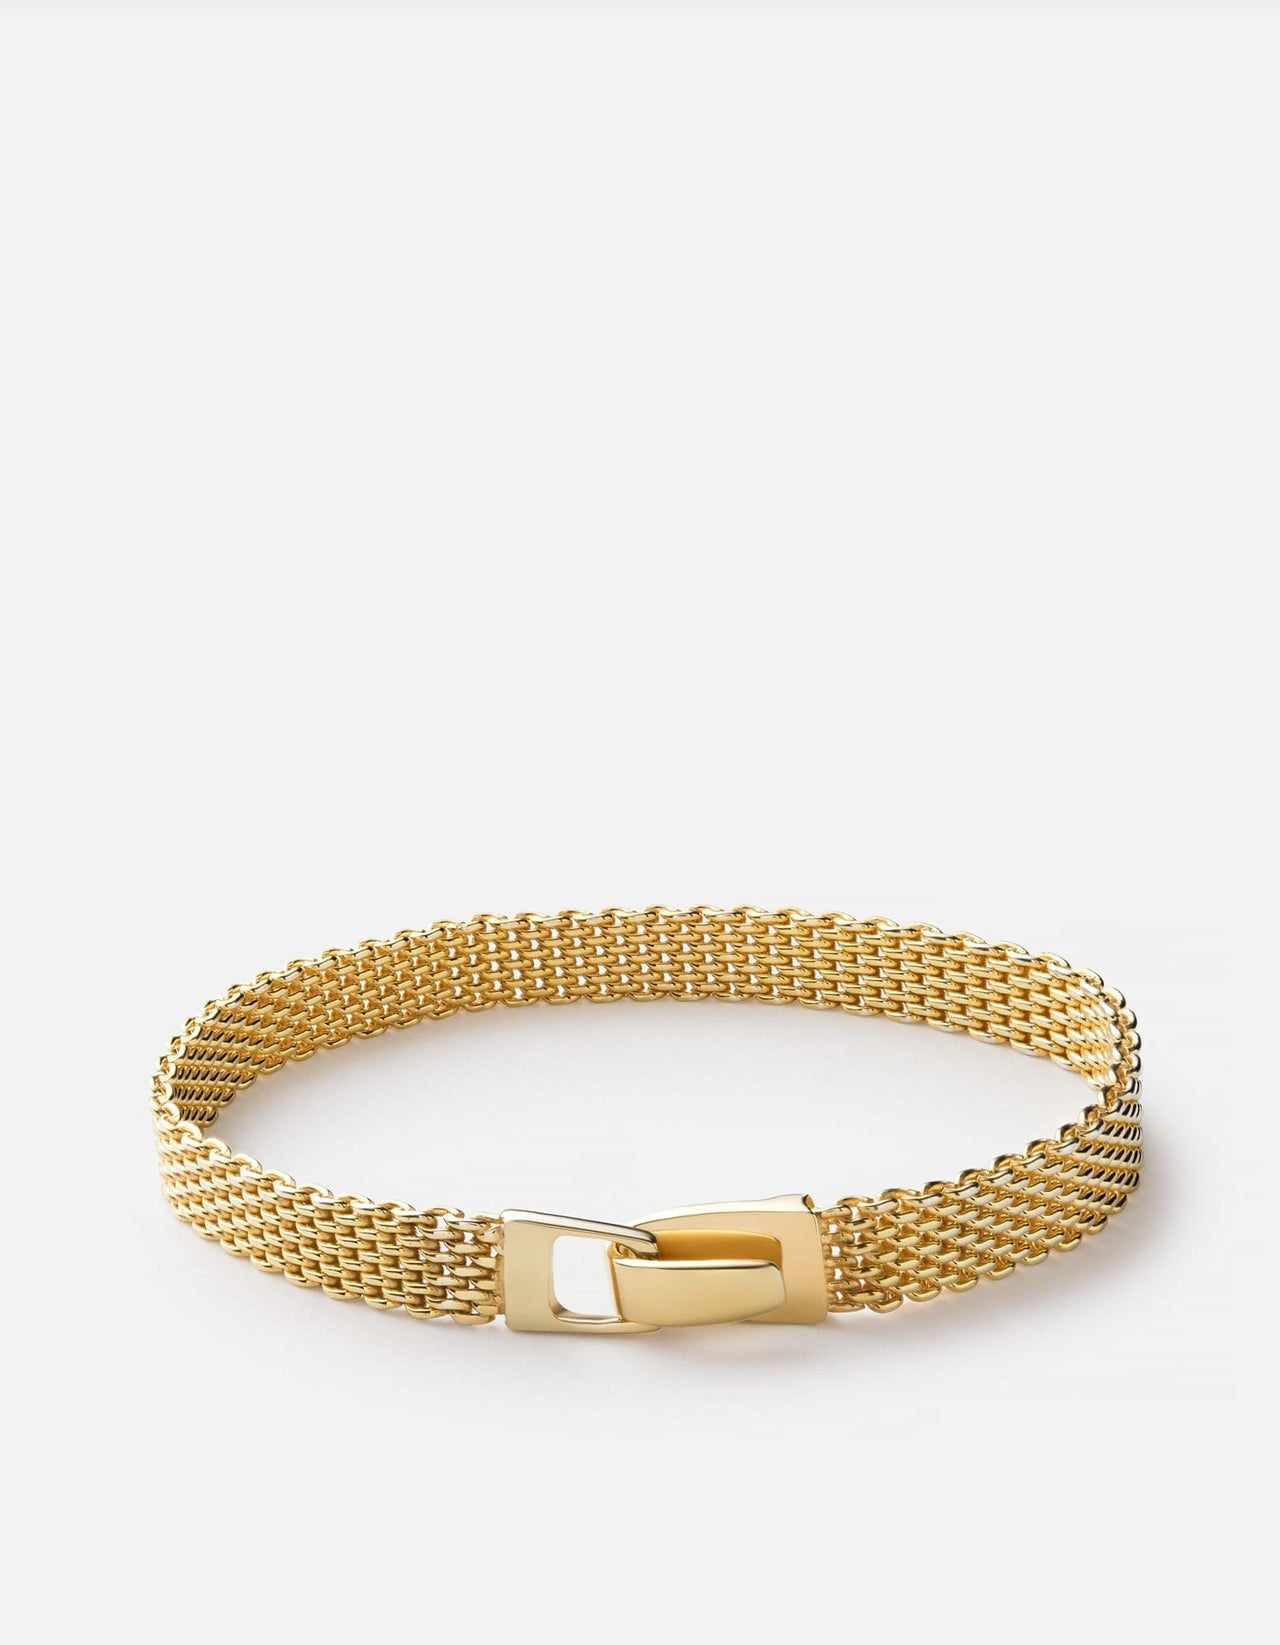 2019 year style- And bracelet gold